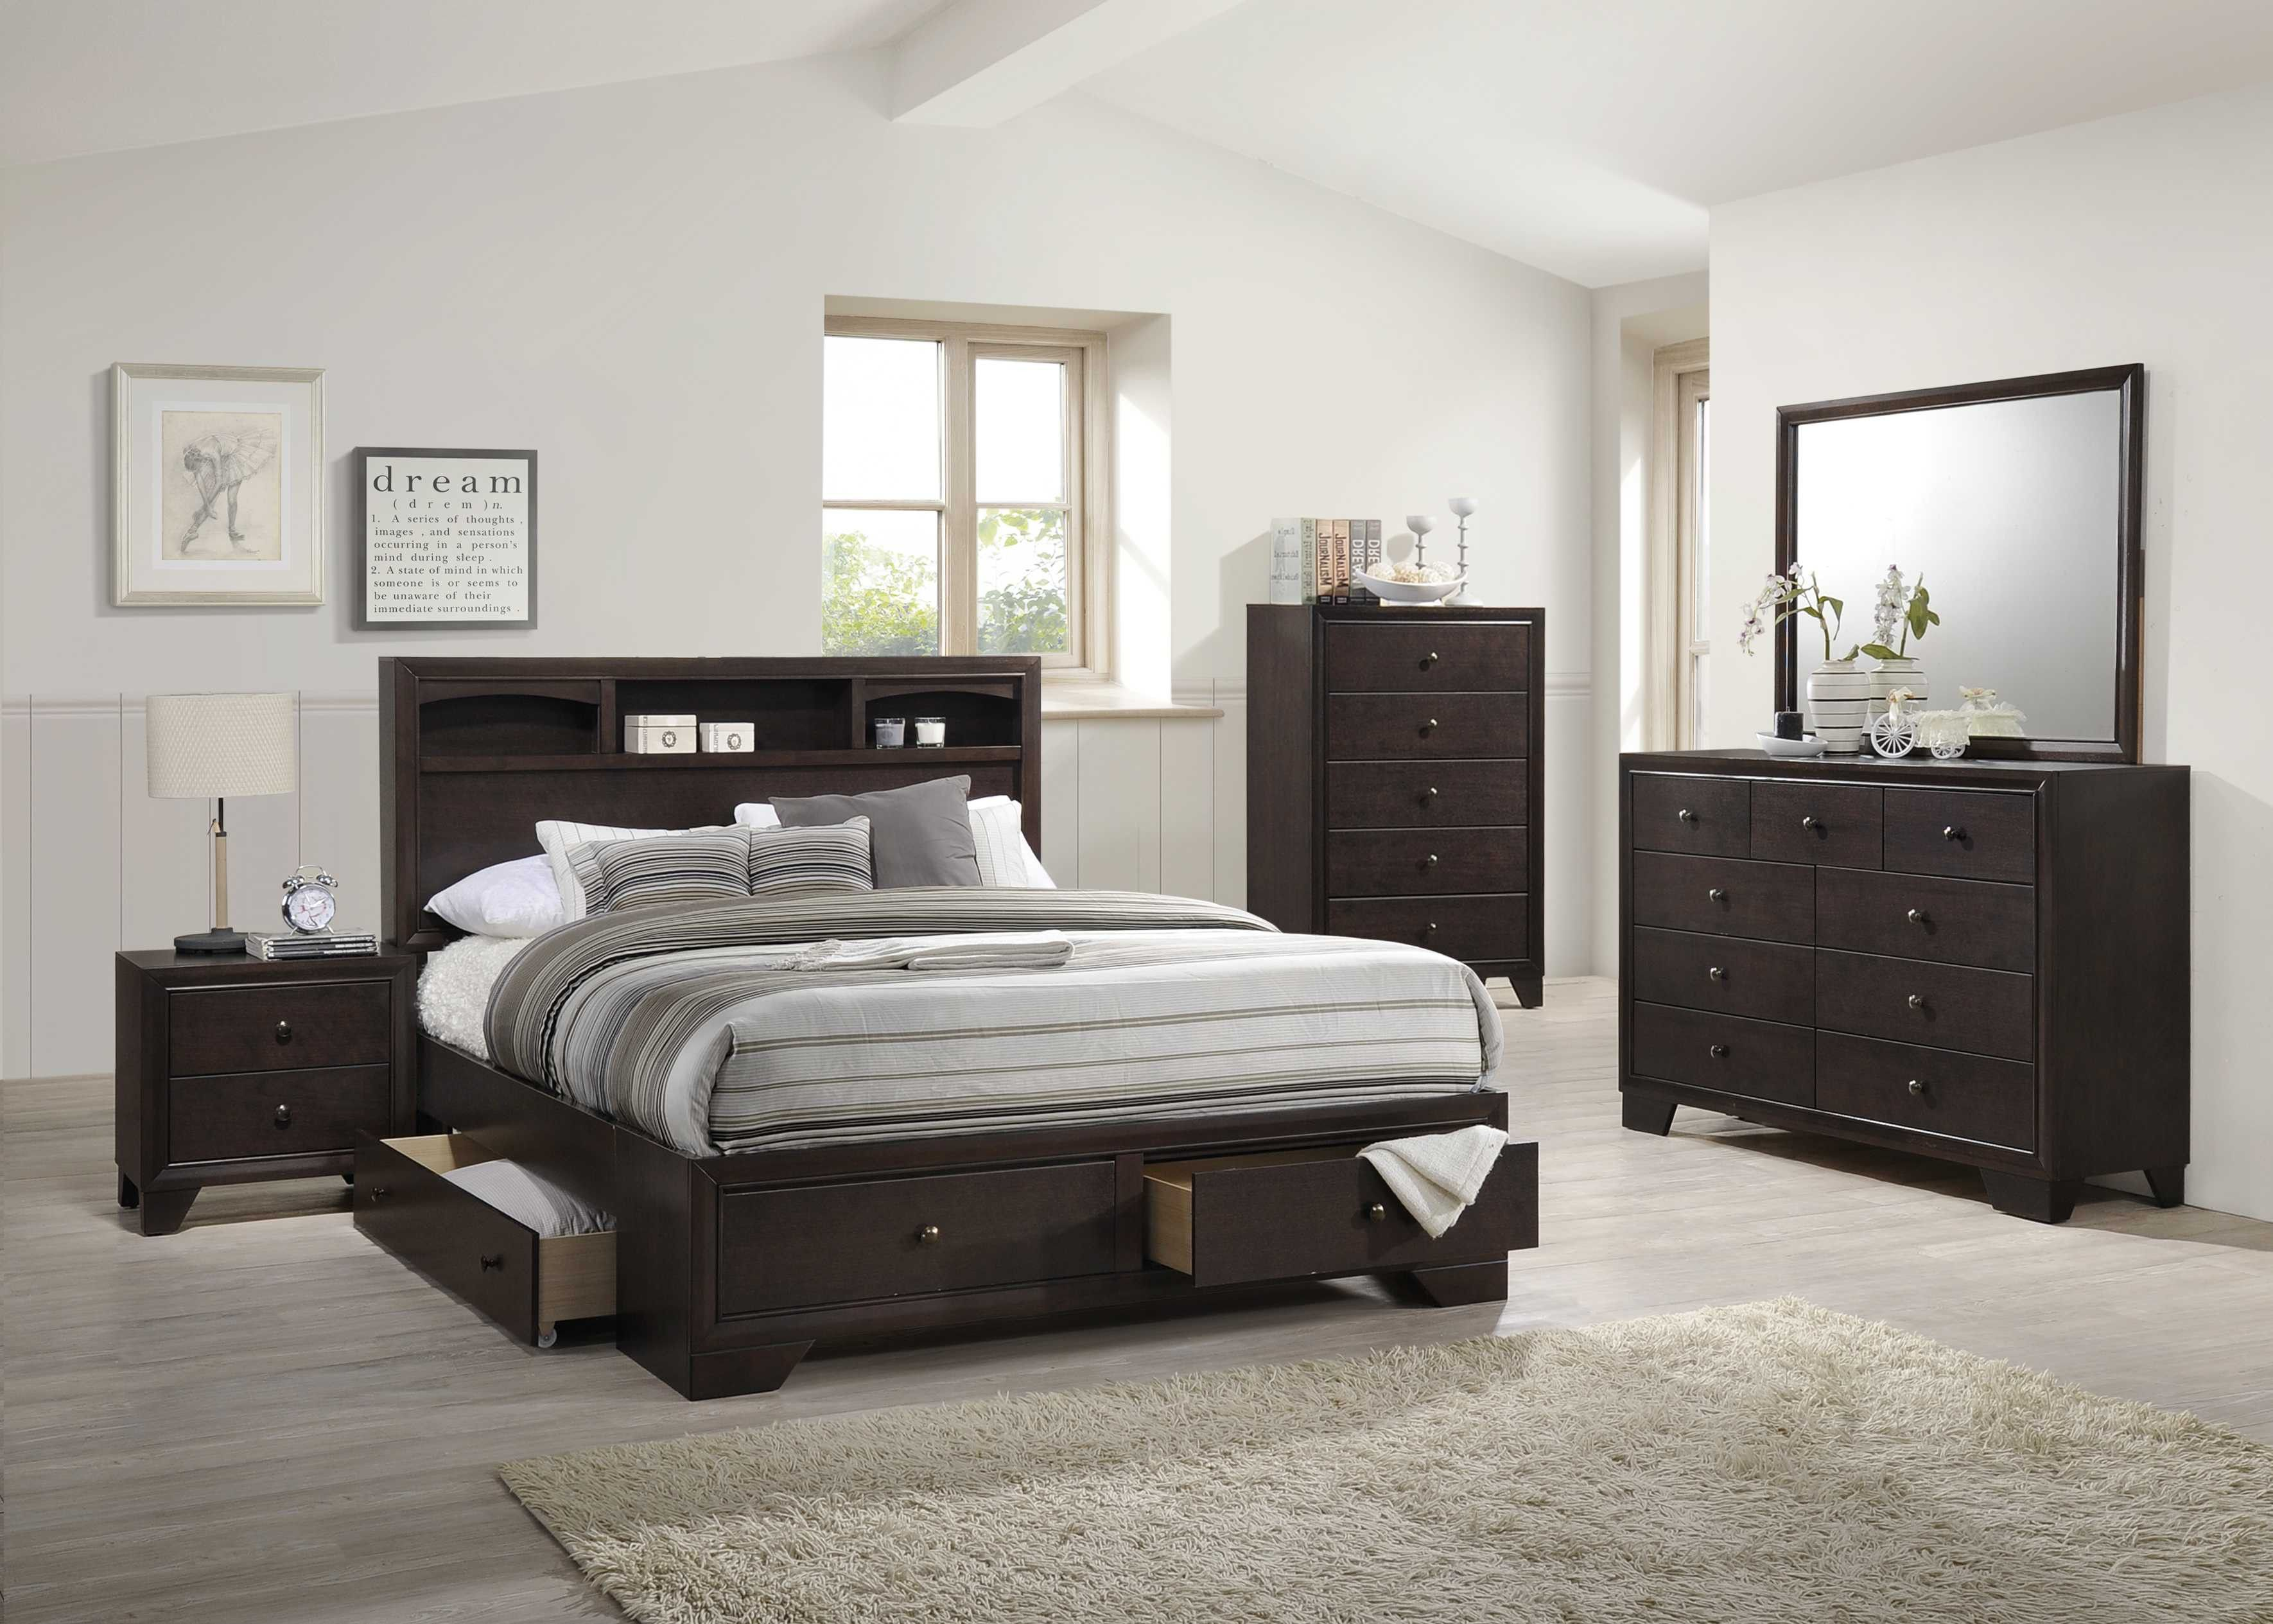 inspirations incredible with images diy storage queen platform drawers size king bed beds trends dimensions hairy